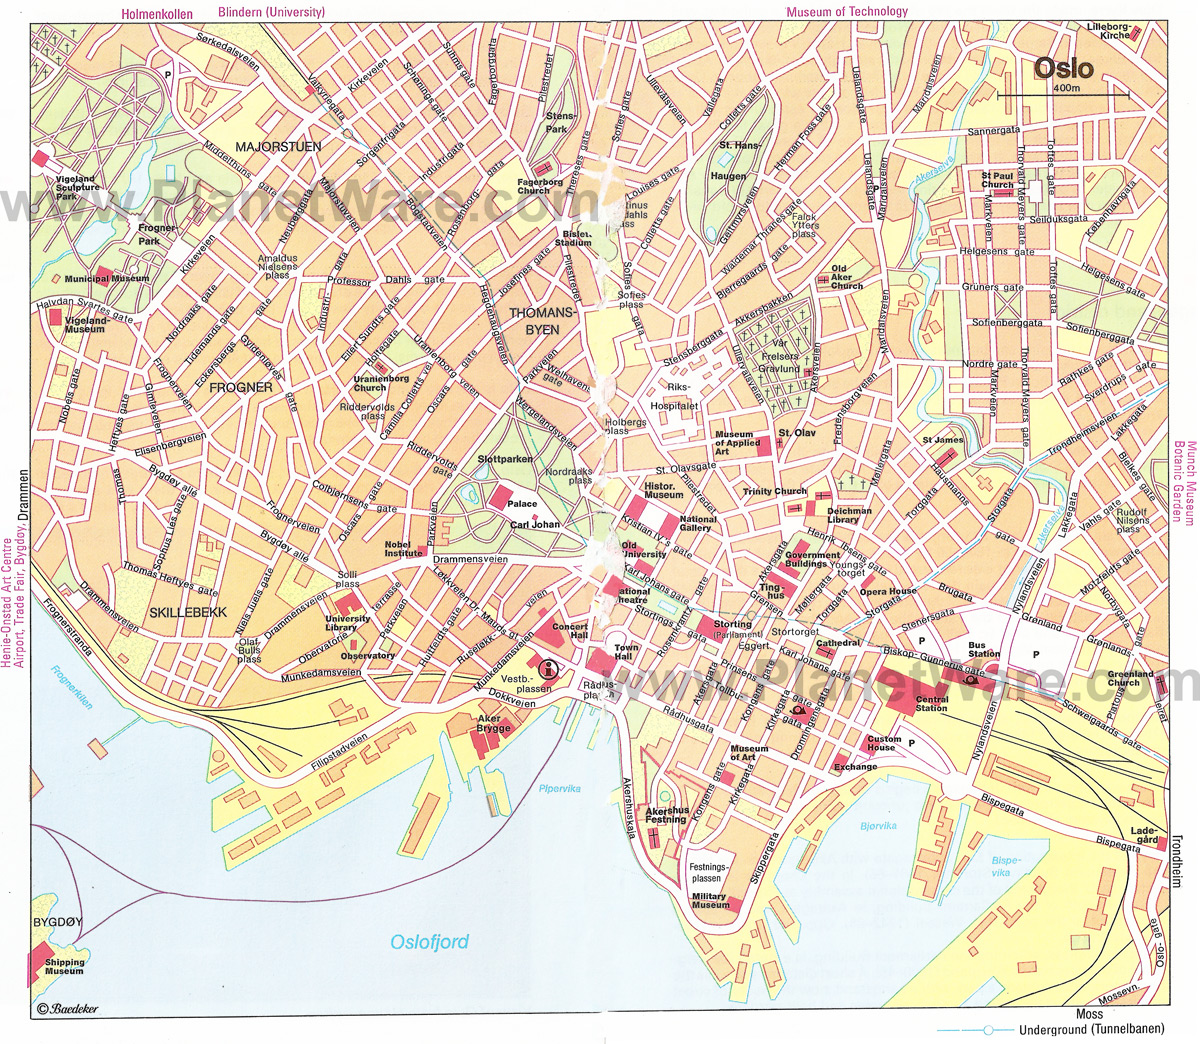 Oslo Map Detailed City And Metro Maps Of Oslo For Download - Norway map detailed